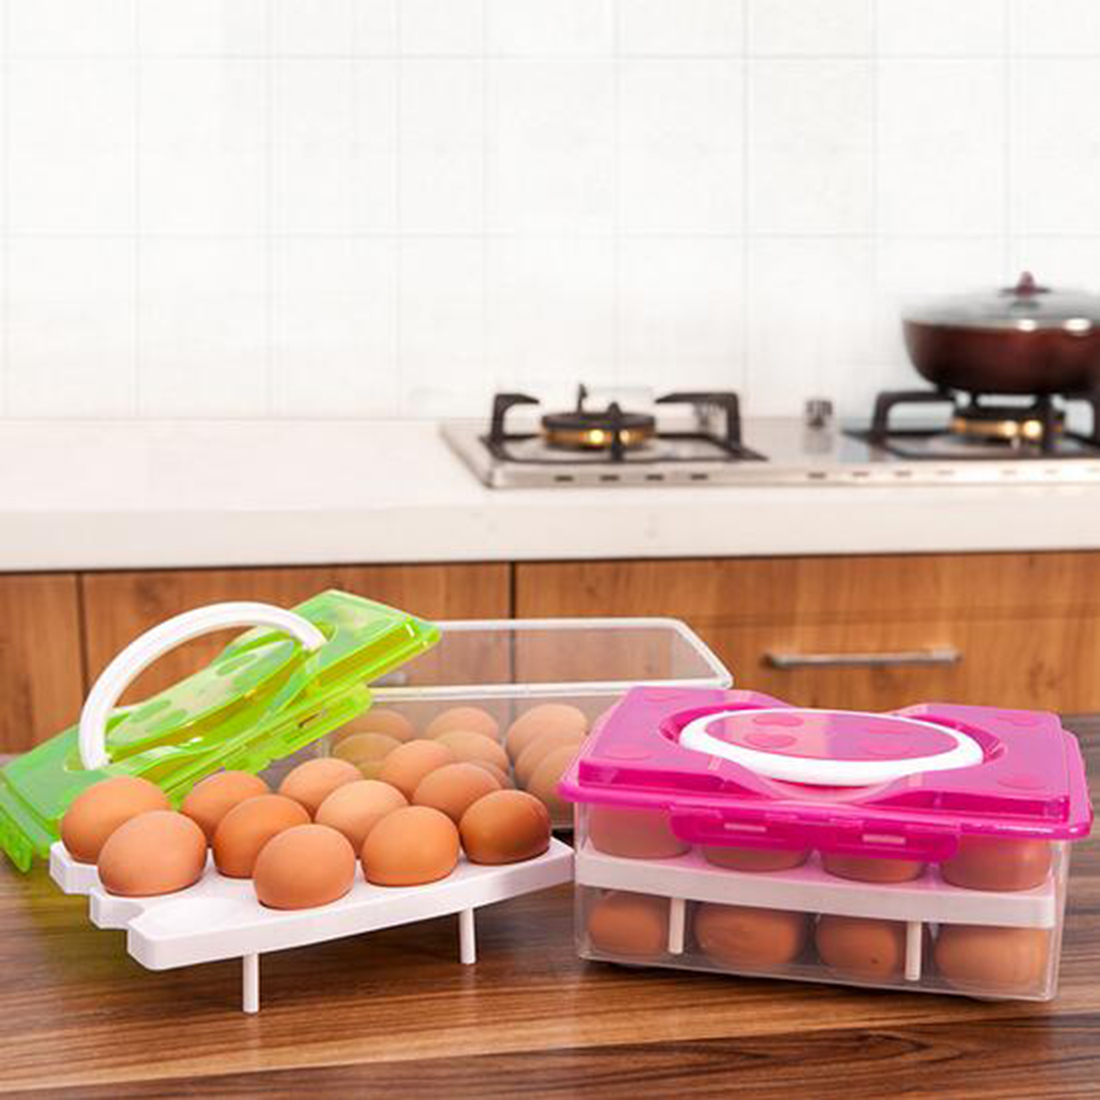 24 Grid Egg Food Container Organizer Convenient Storage Boxes Box Double Layer Durable Multifunctional Crisper Kitchen Products